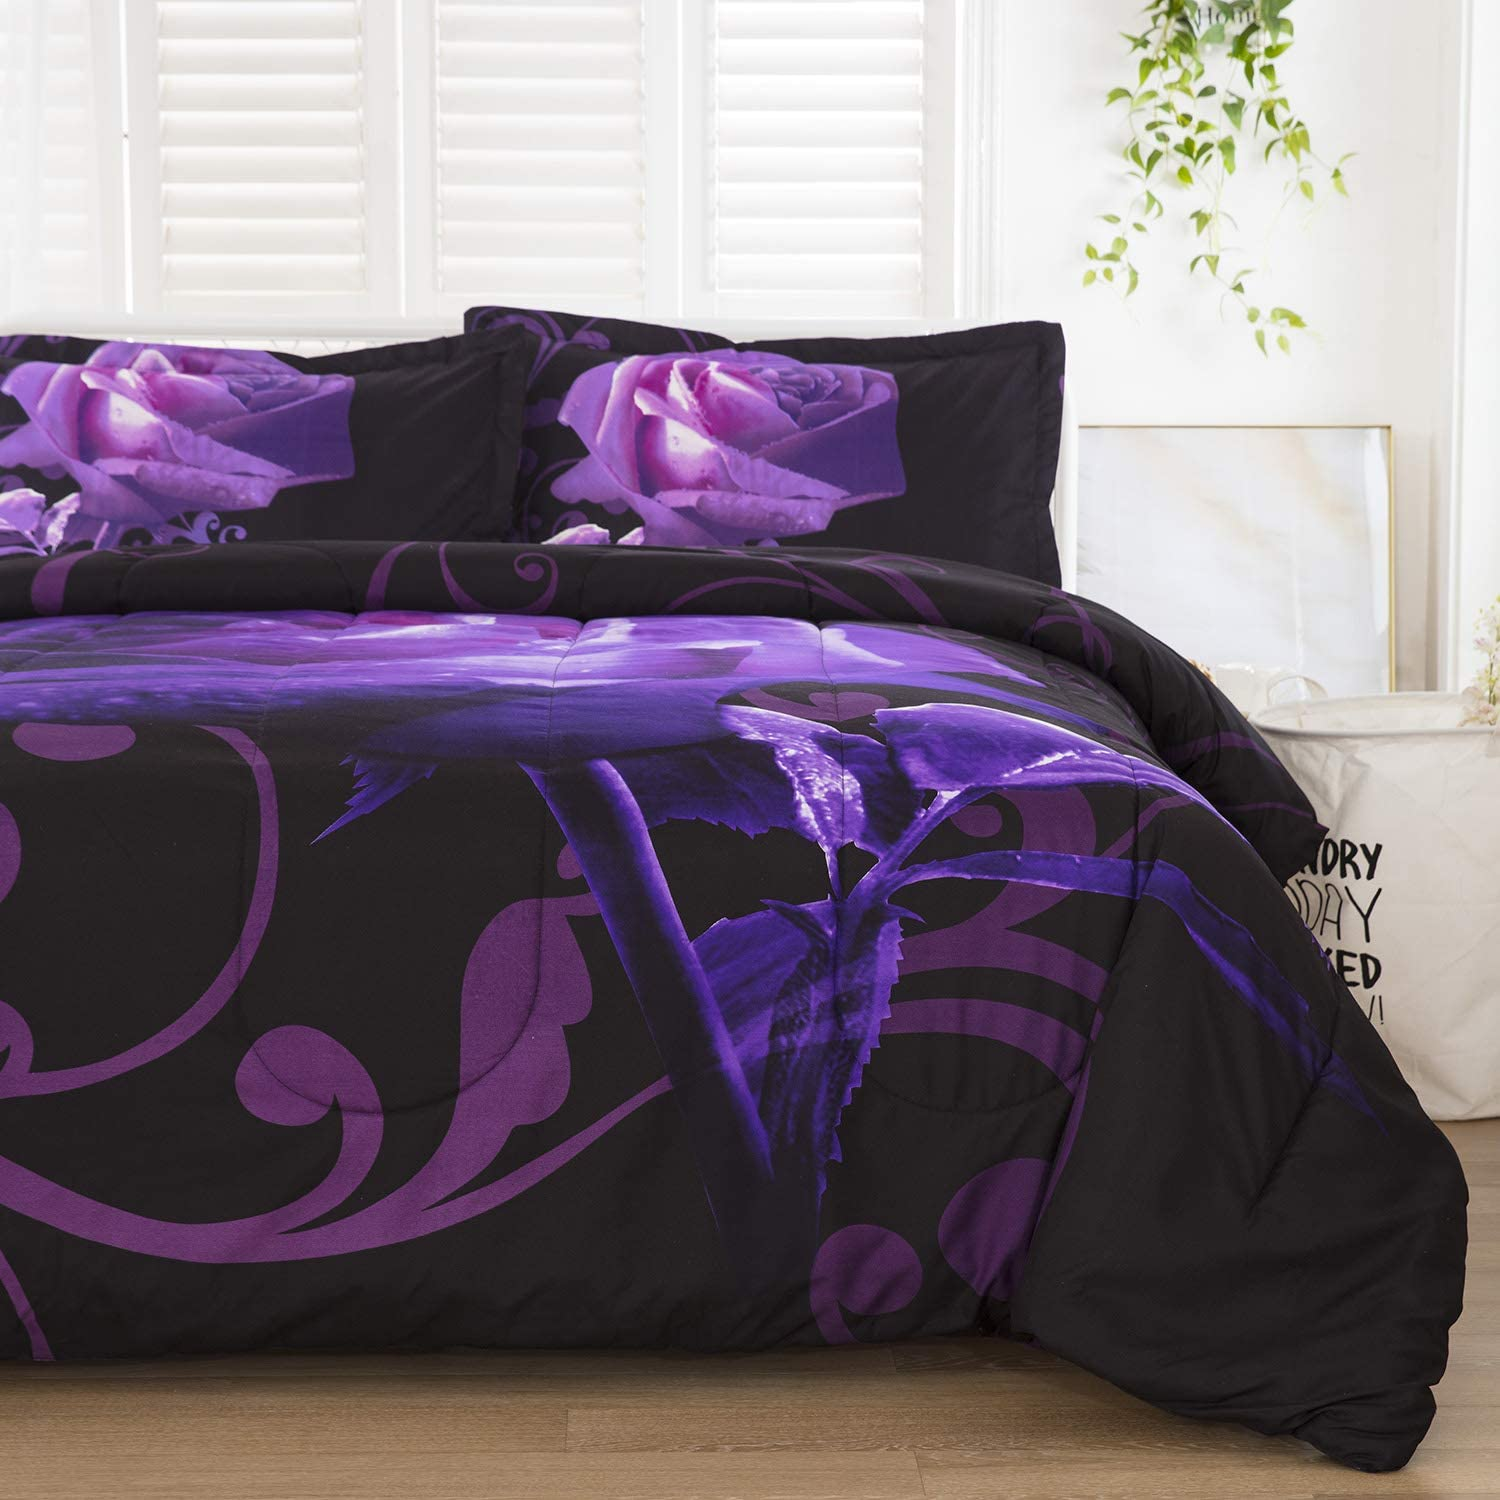 "Purple Comforter Set Queen Reversible Purple Rose Pattern Printed Bedding Down Comforter Insert with 2 Pillow Cases for All Seasons, Soft Microfiber Inner Filling Comforter Duvet Set 90""x90"""